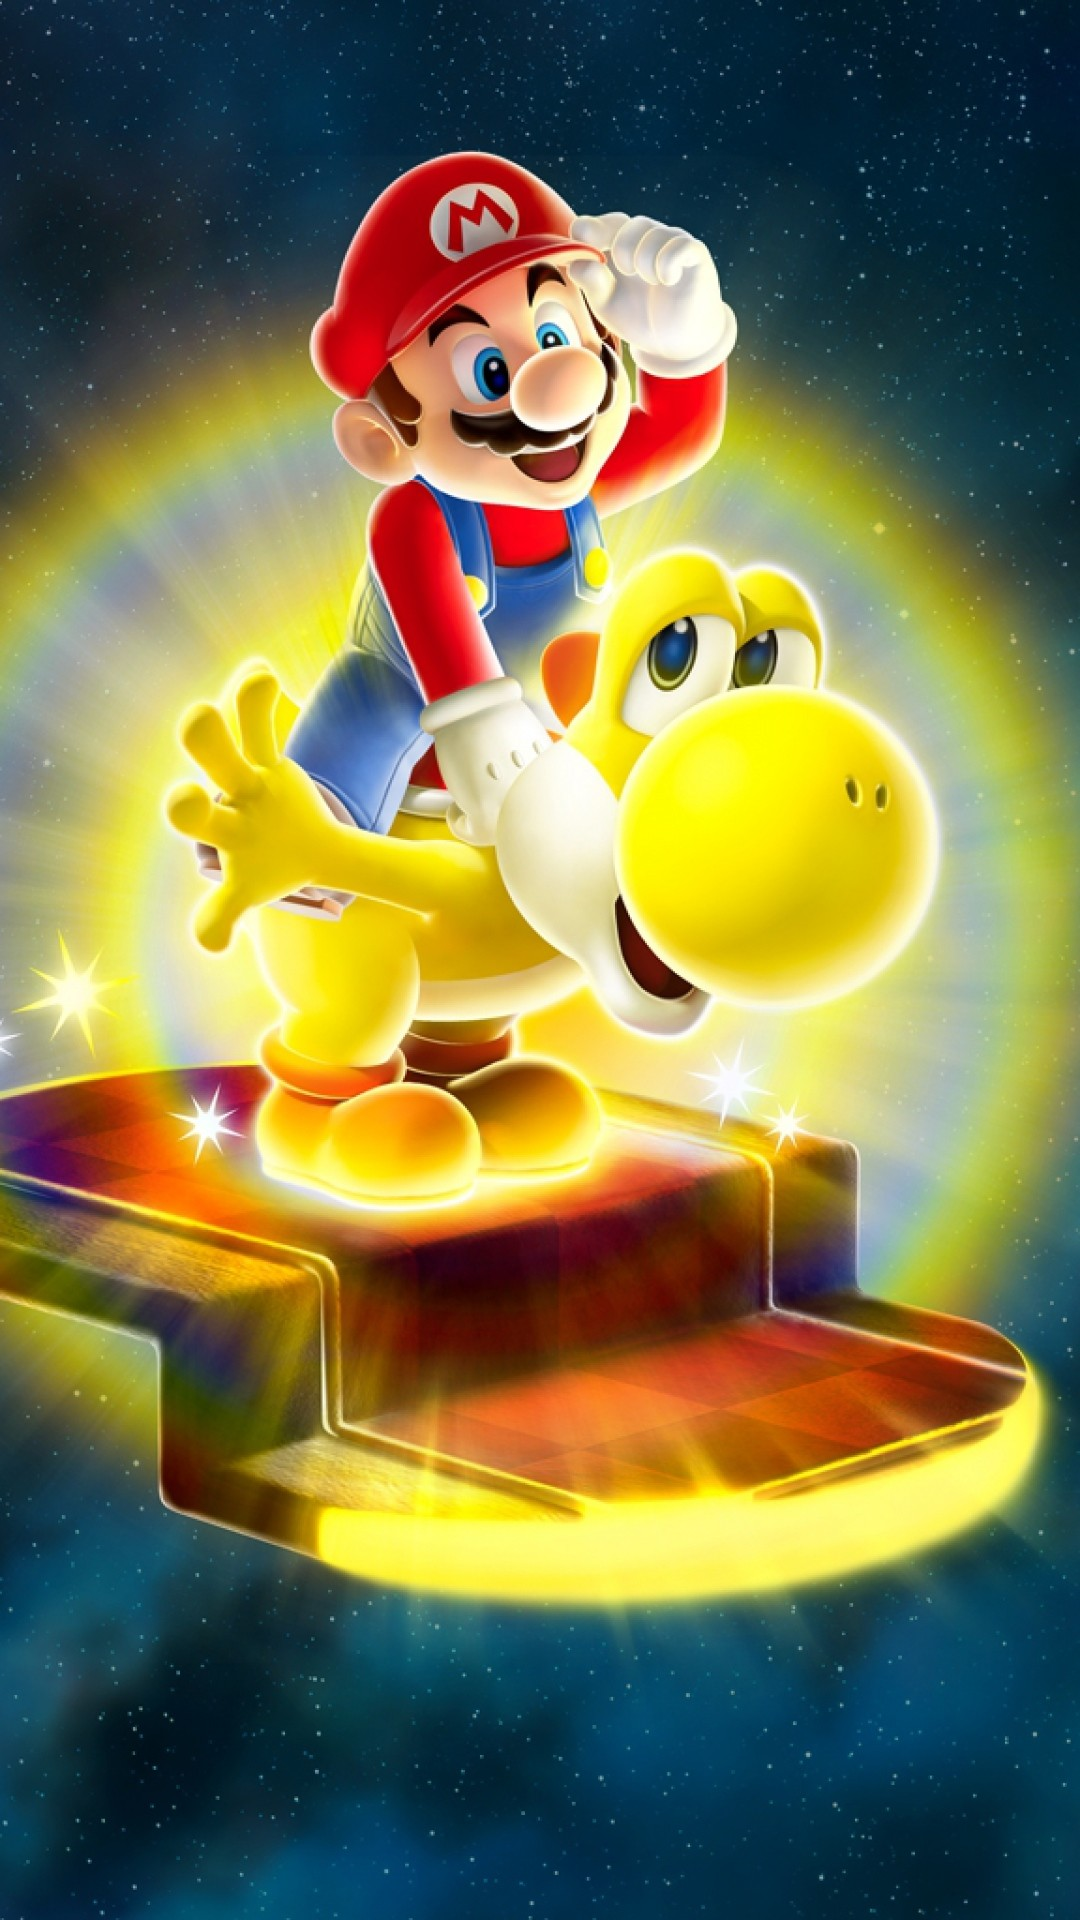 1080x1920 Yoshi Hd super mario bros world mobile phone wallpapers